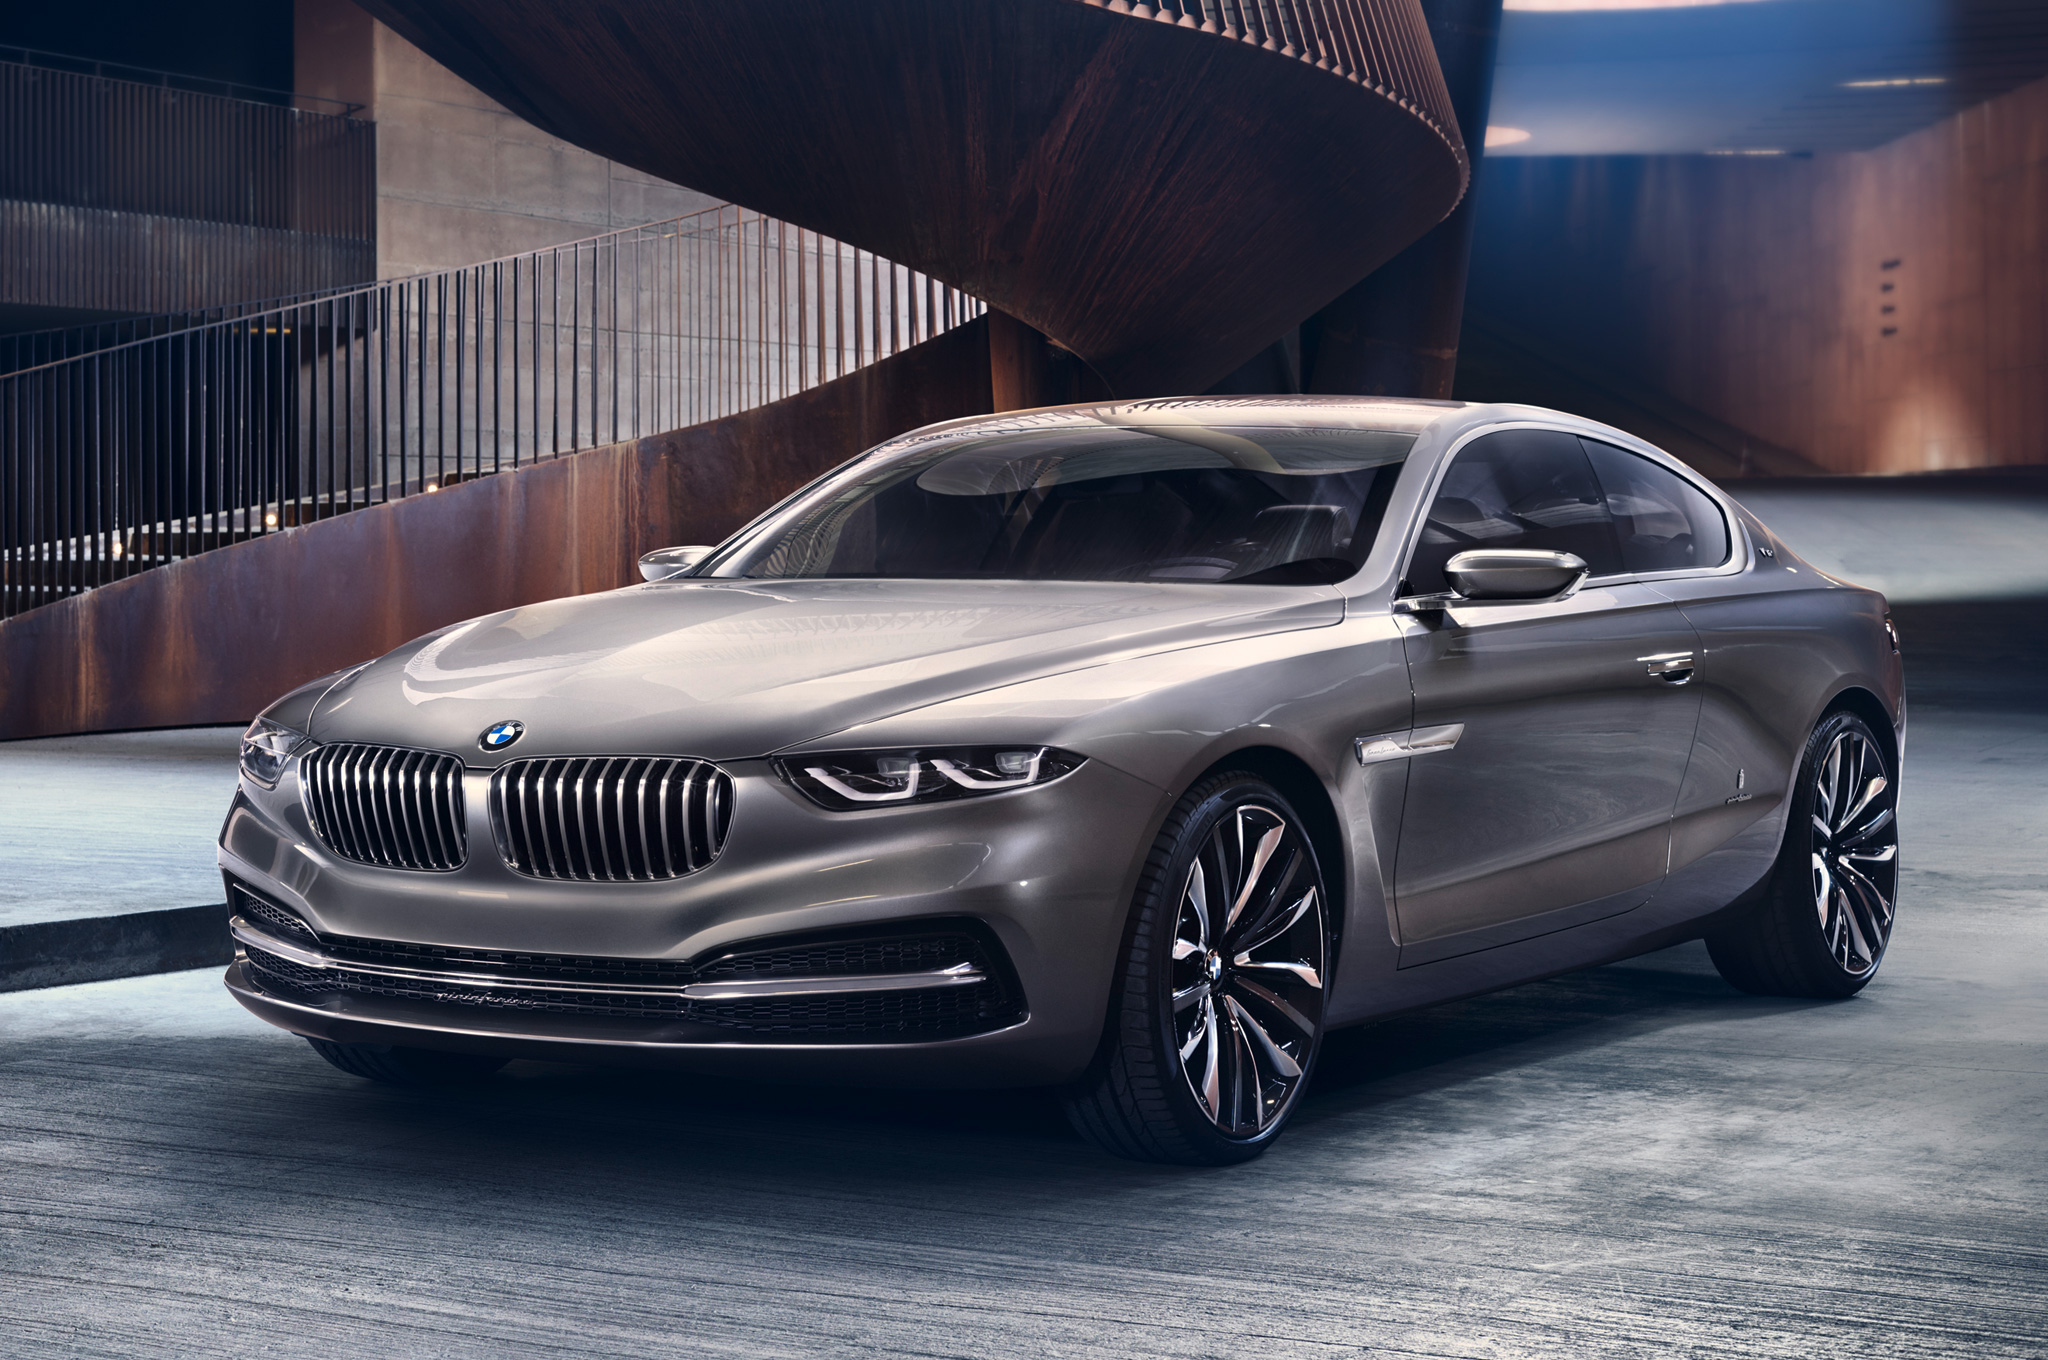 2019 BMW Gran Coupe Concept photo - 4